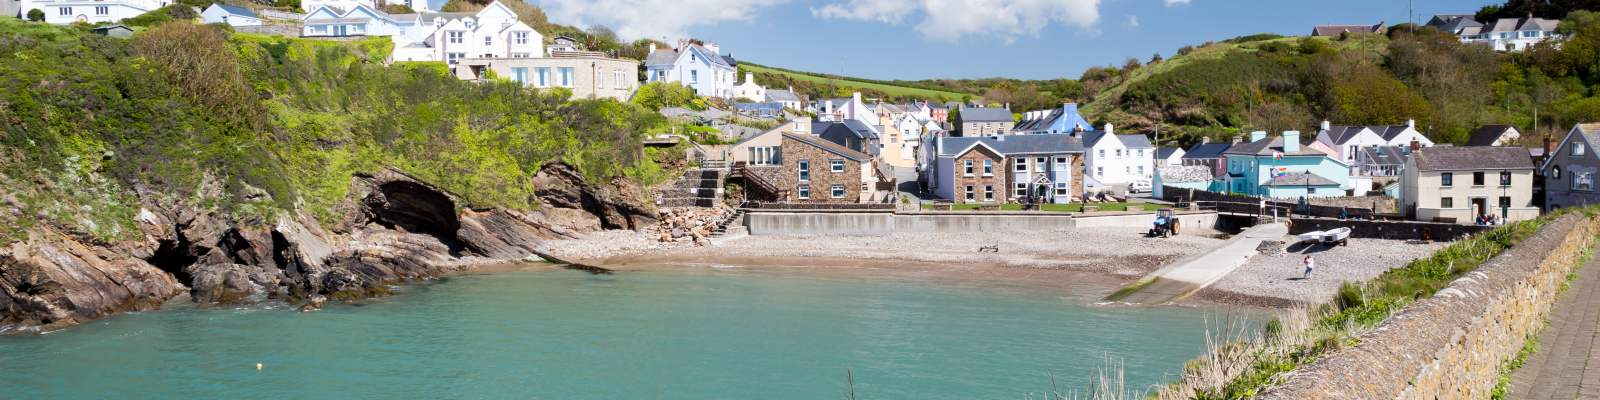 Self Catering Holiday Cottages In Little Haven